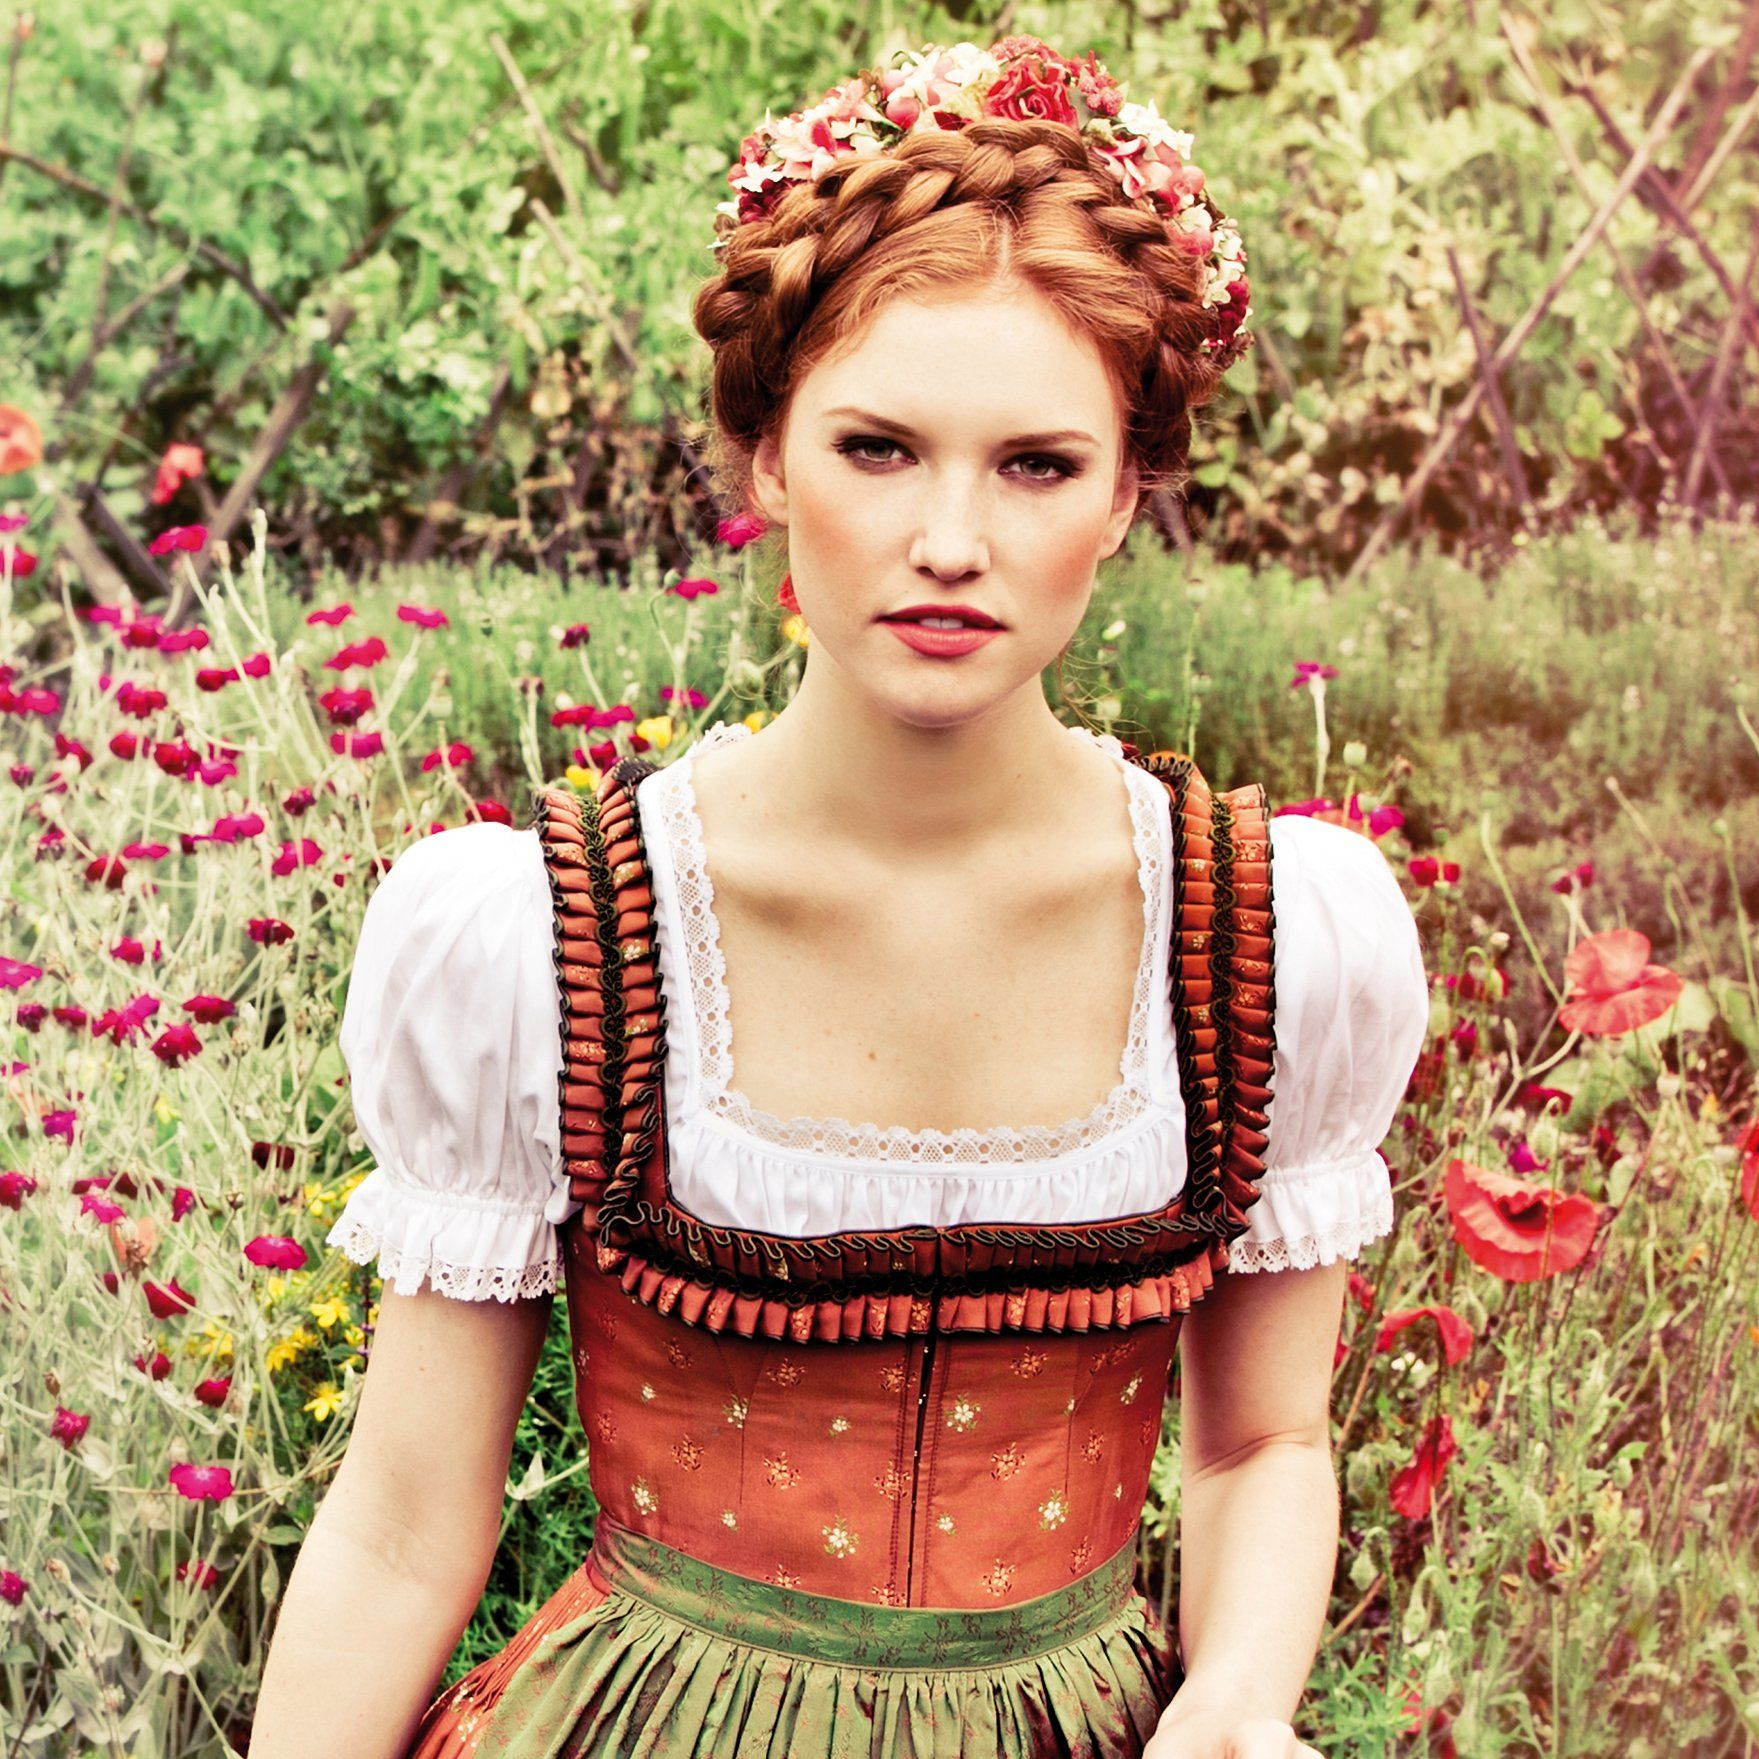 Remarkable 10 Images About Oktoberfest On Pinterest Dirndl Festivals Hairstyles For Men Maxibearus